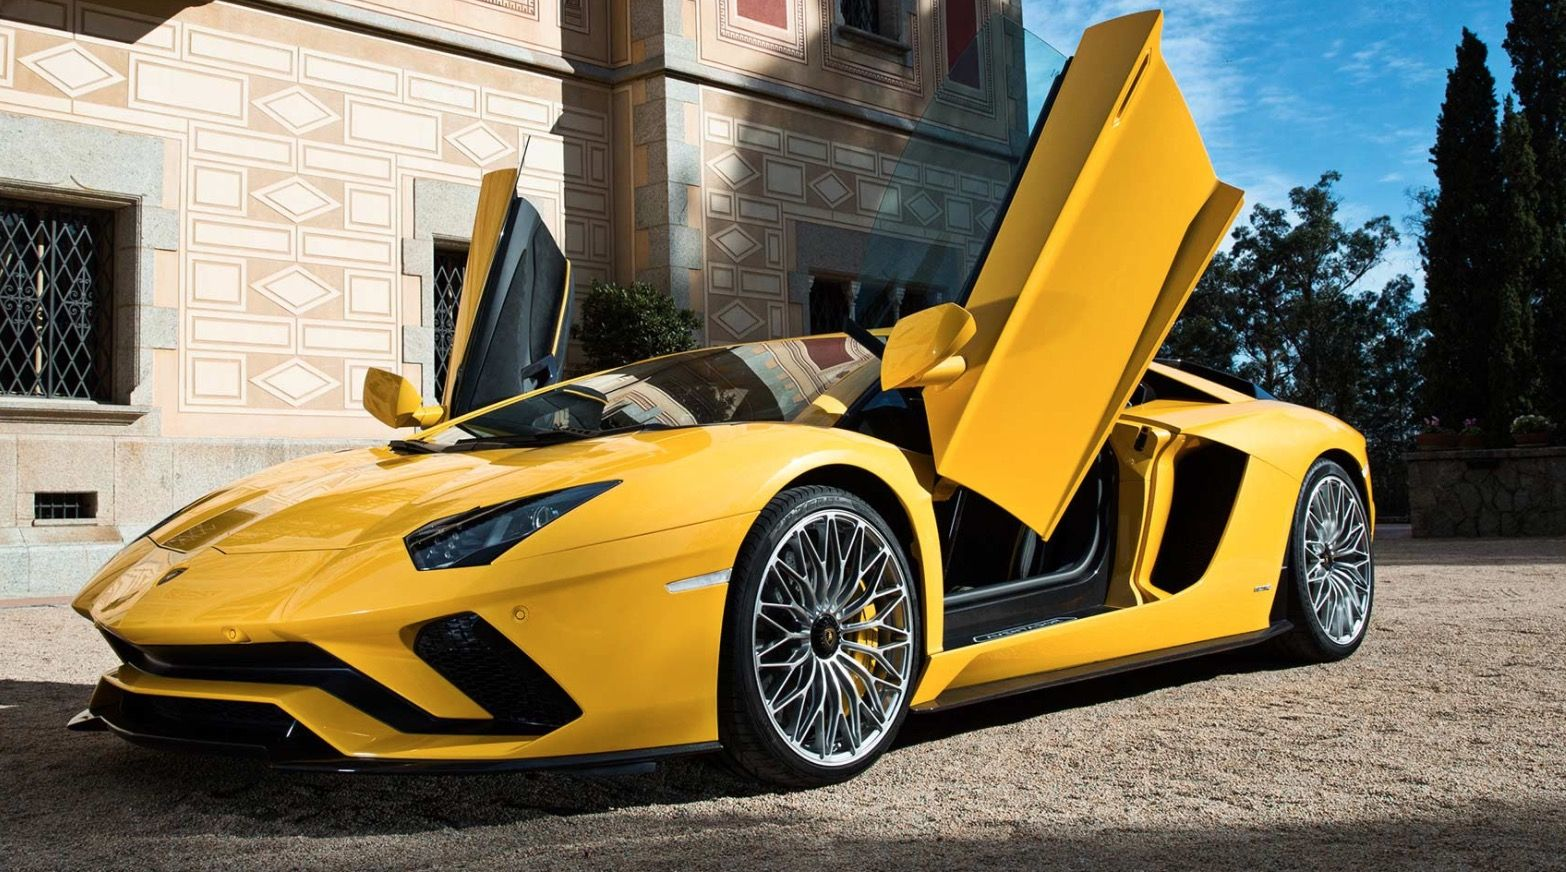 2018 Lamborghini Aventador S Is The First Supercar To Support Android Auto Super Sport Cars Sports Car Lamborghini Aventador